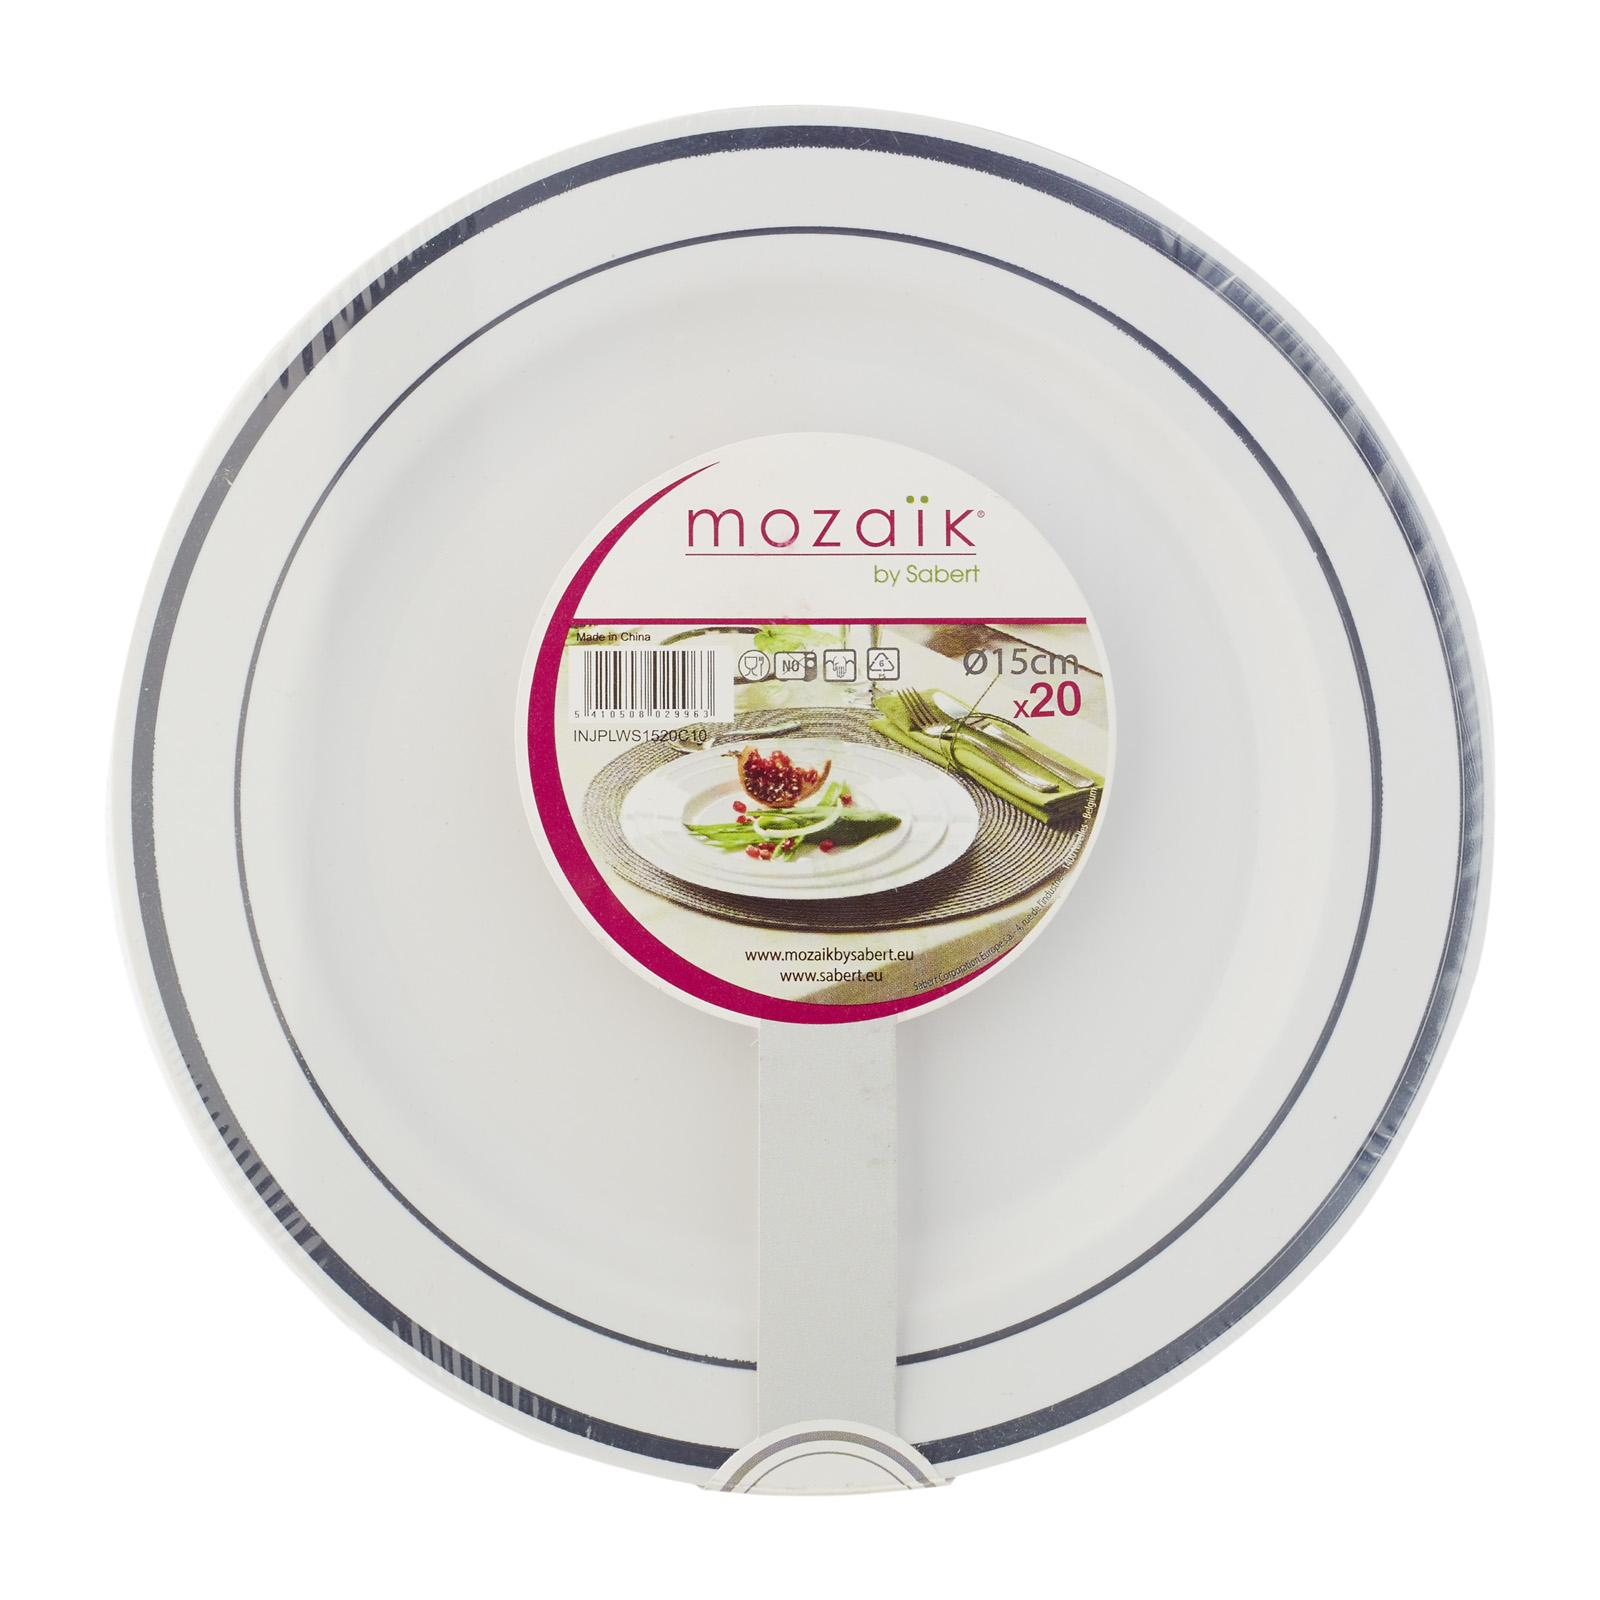 Mozaik White 6 Inches Plastic Plates with Silver Rim